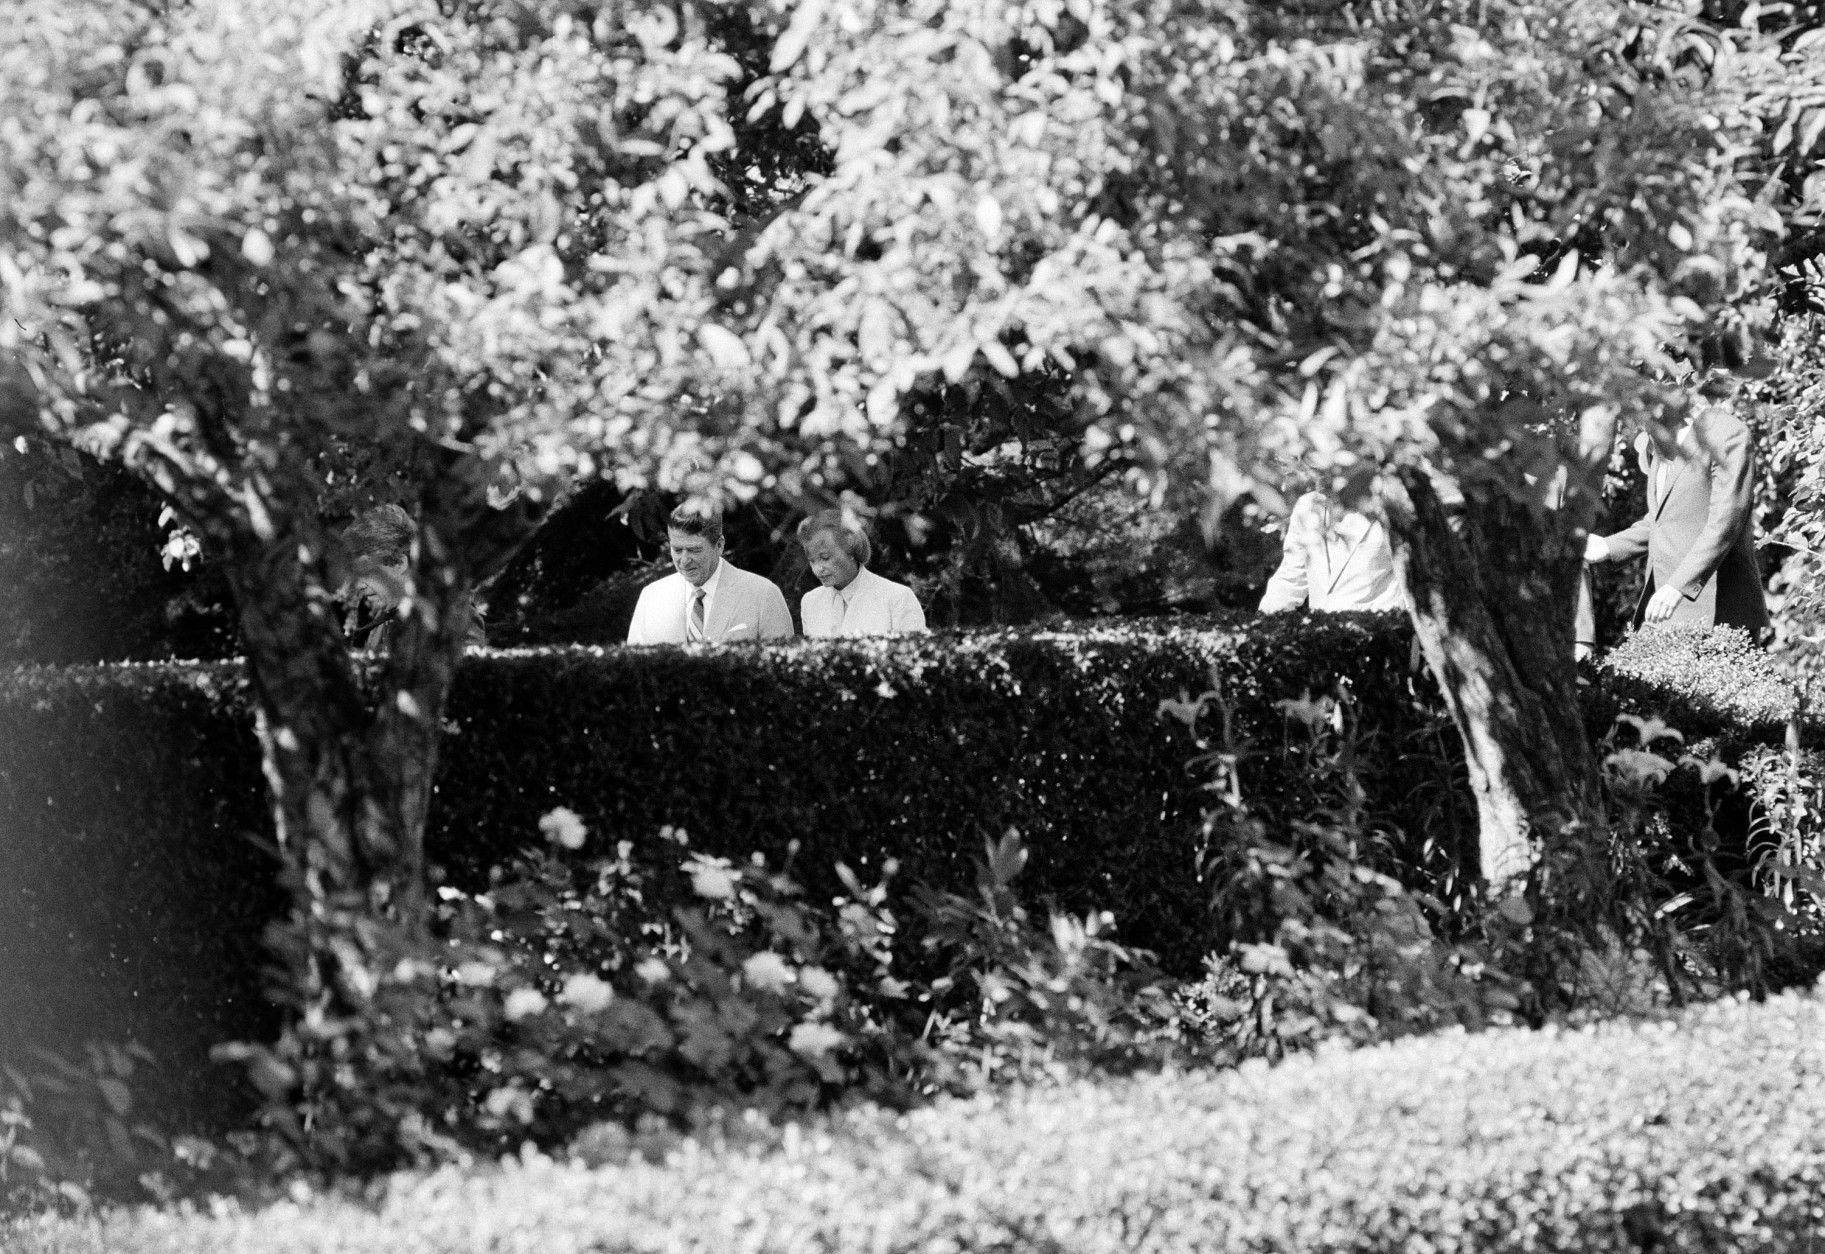 President Reagan and Supreme Court nominee Sandra Day O'Connor are surrounded by foliage as they stroll through the Rose Garden of the White House, July 15, 1981.  O'Connor is the first woman to be nominated to the position.  (AP Photo)